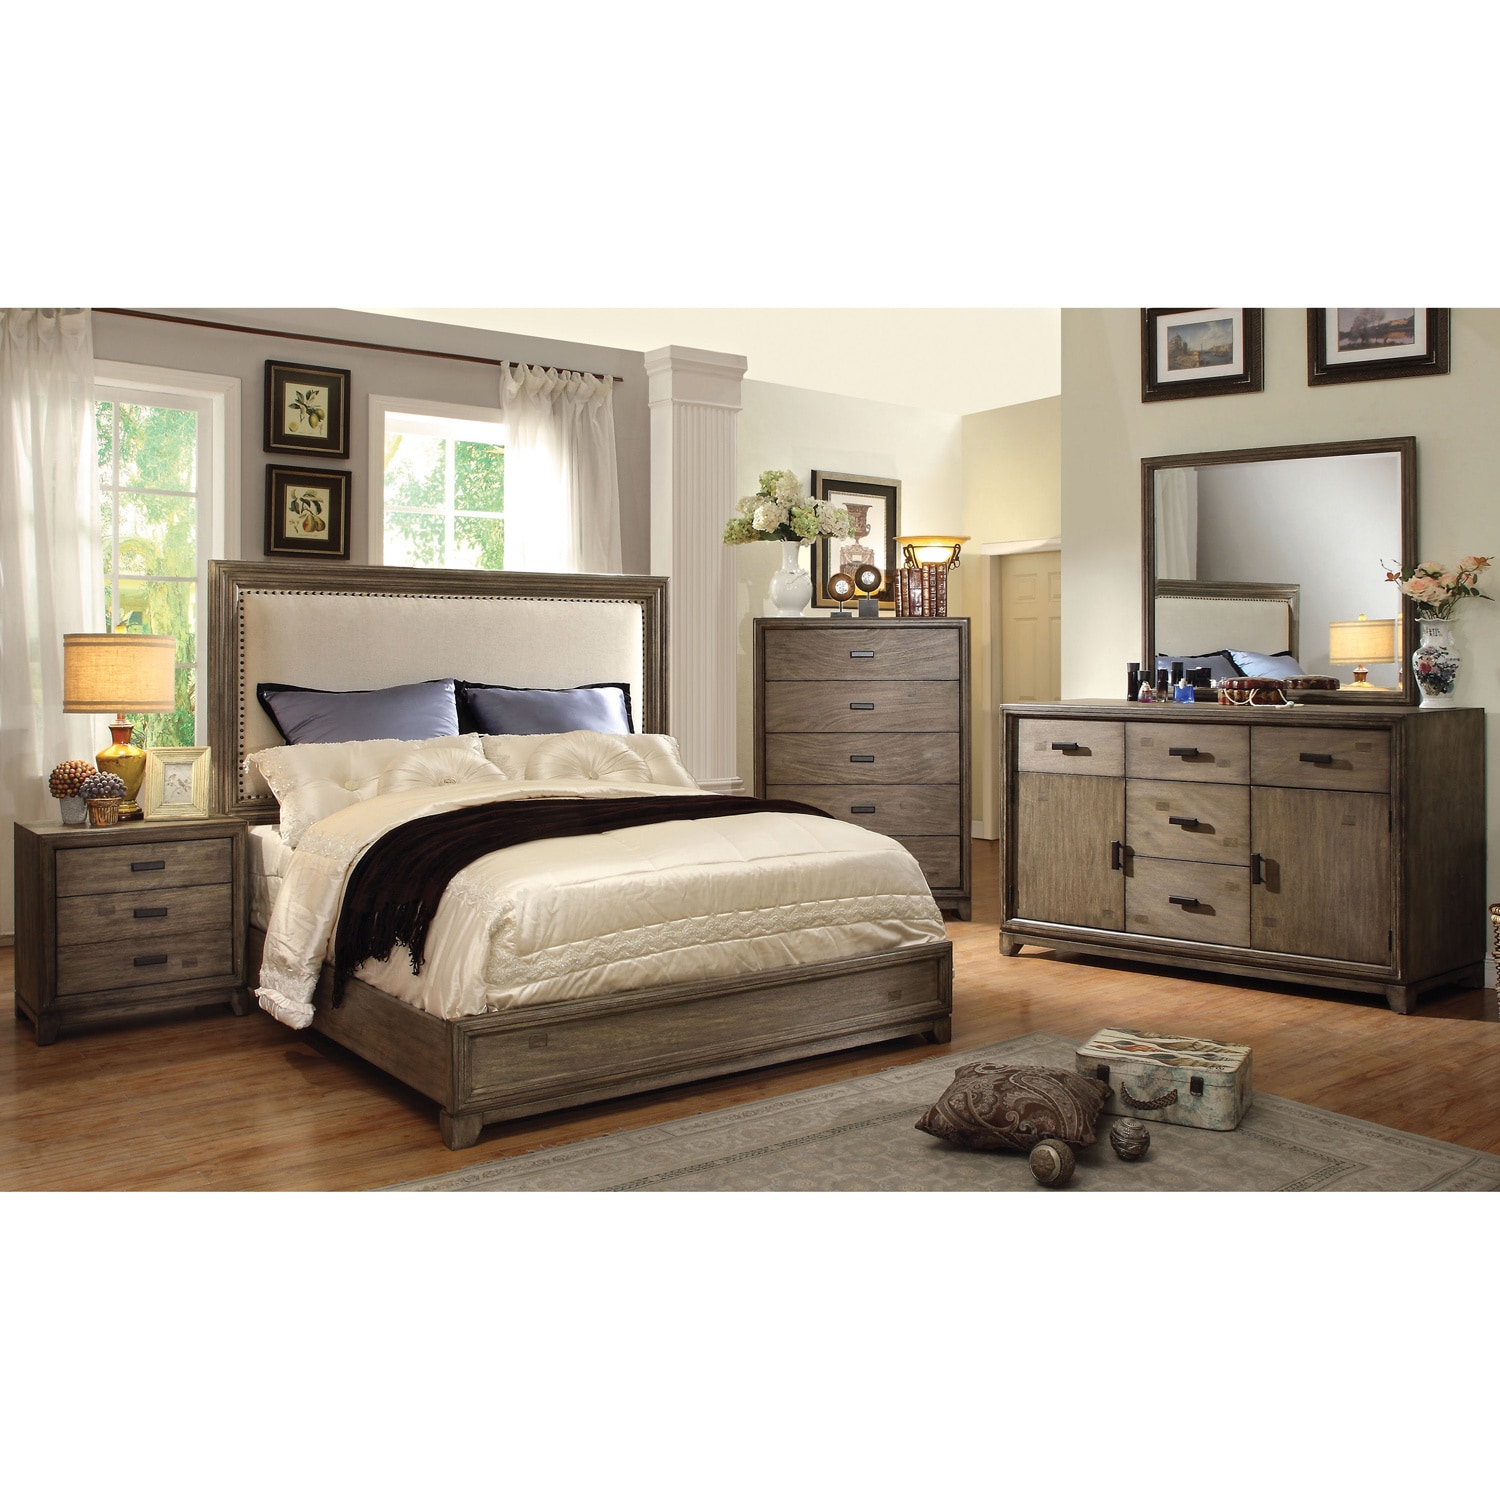 overstock the best of bedroom inspirational set an sabrina bed upholstered offers furniture ideas sets design princess